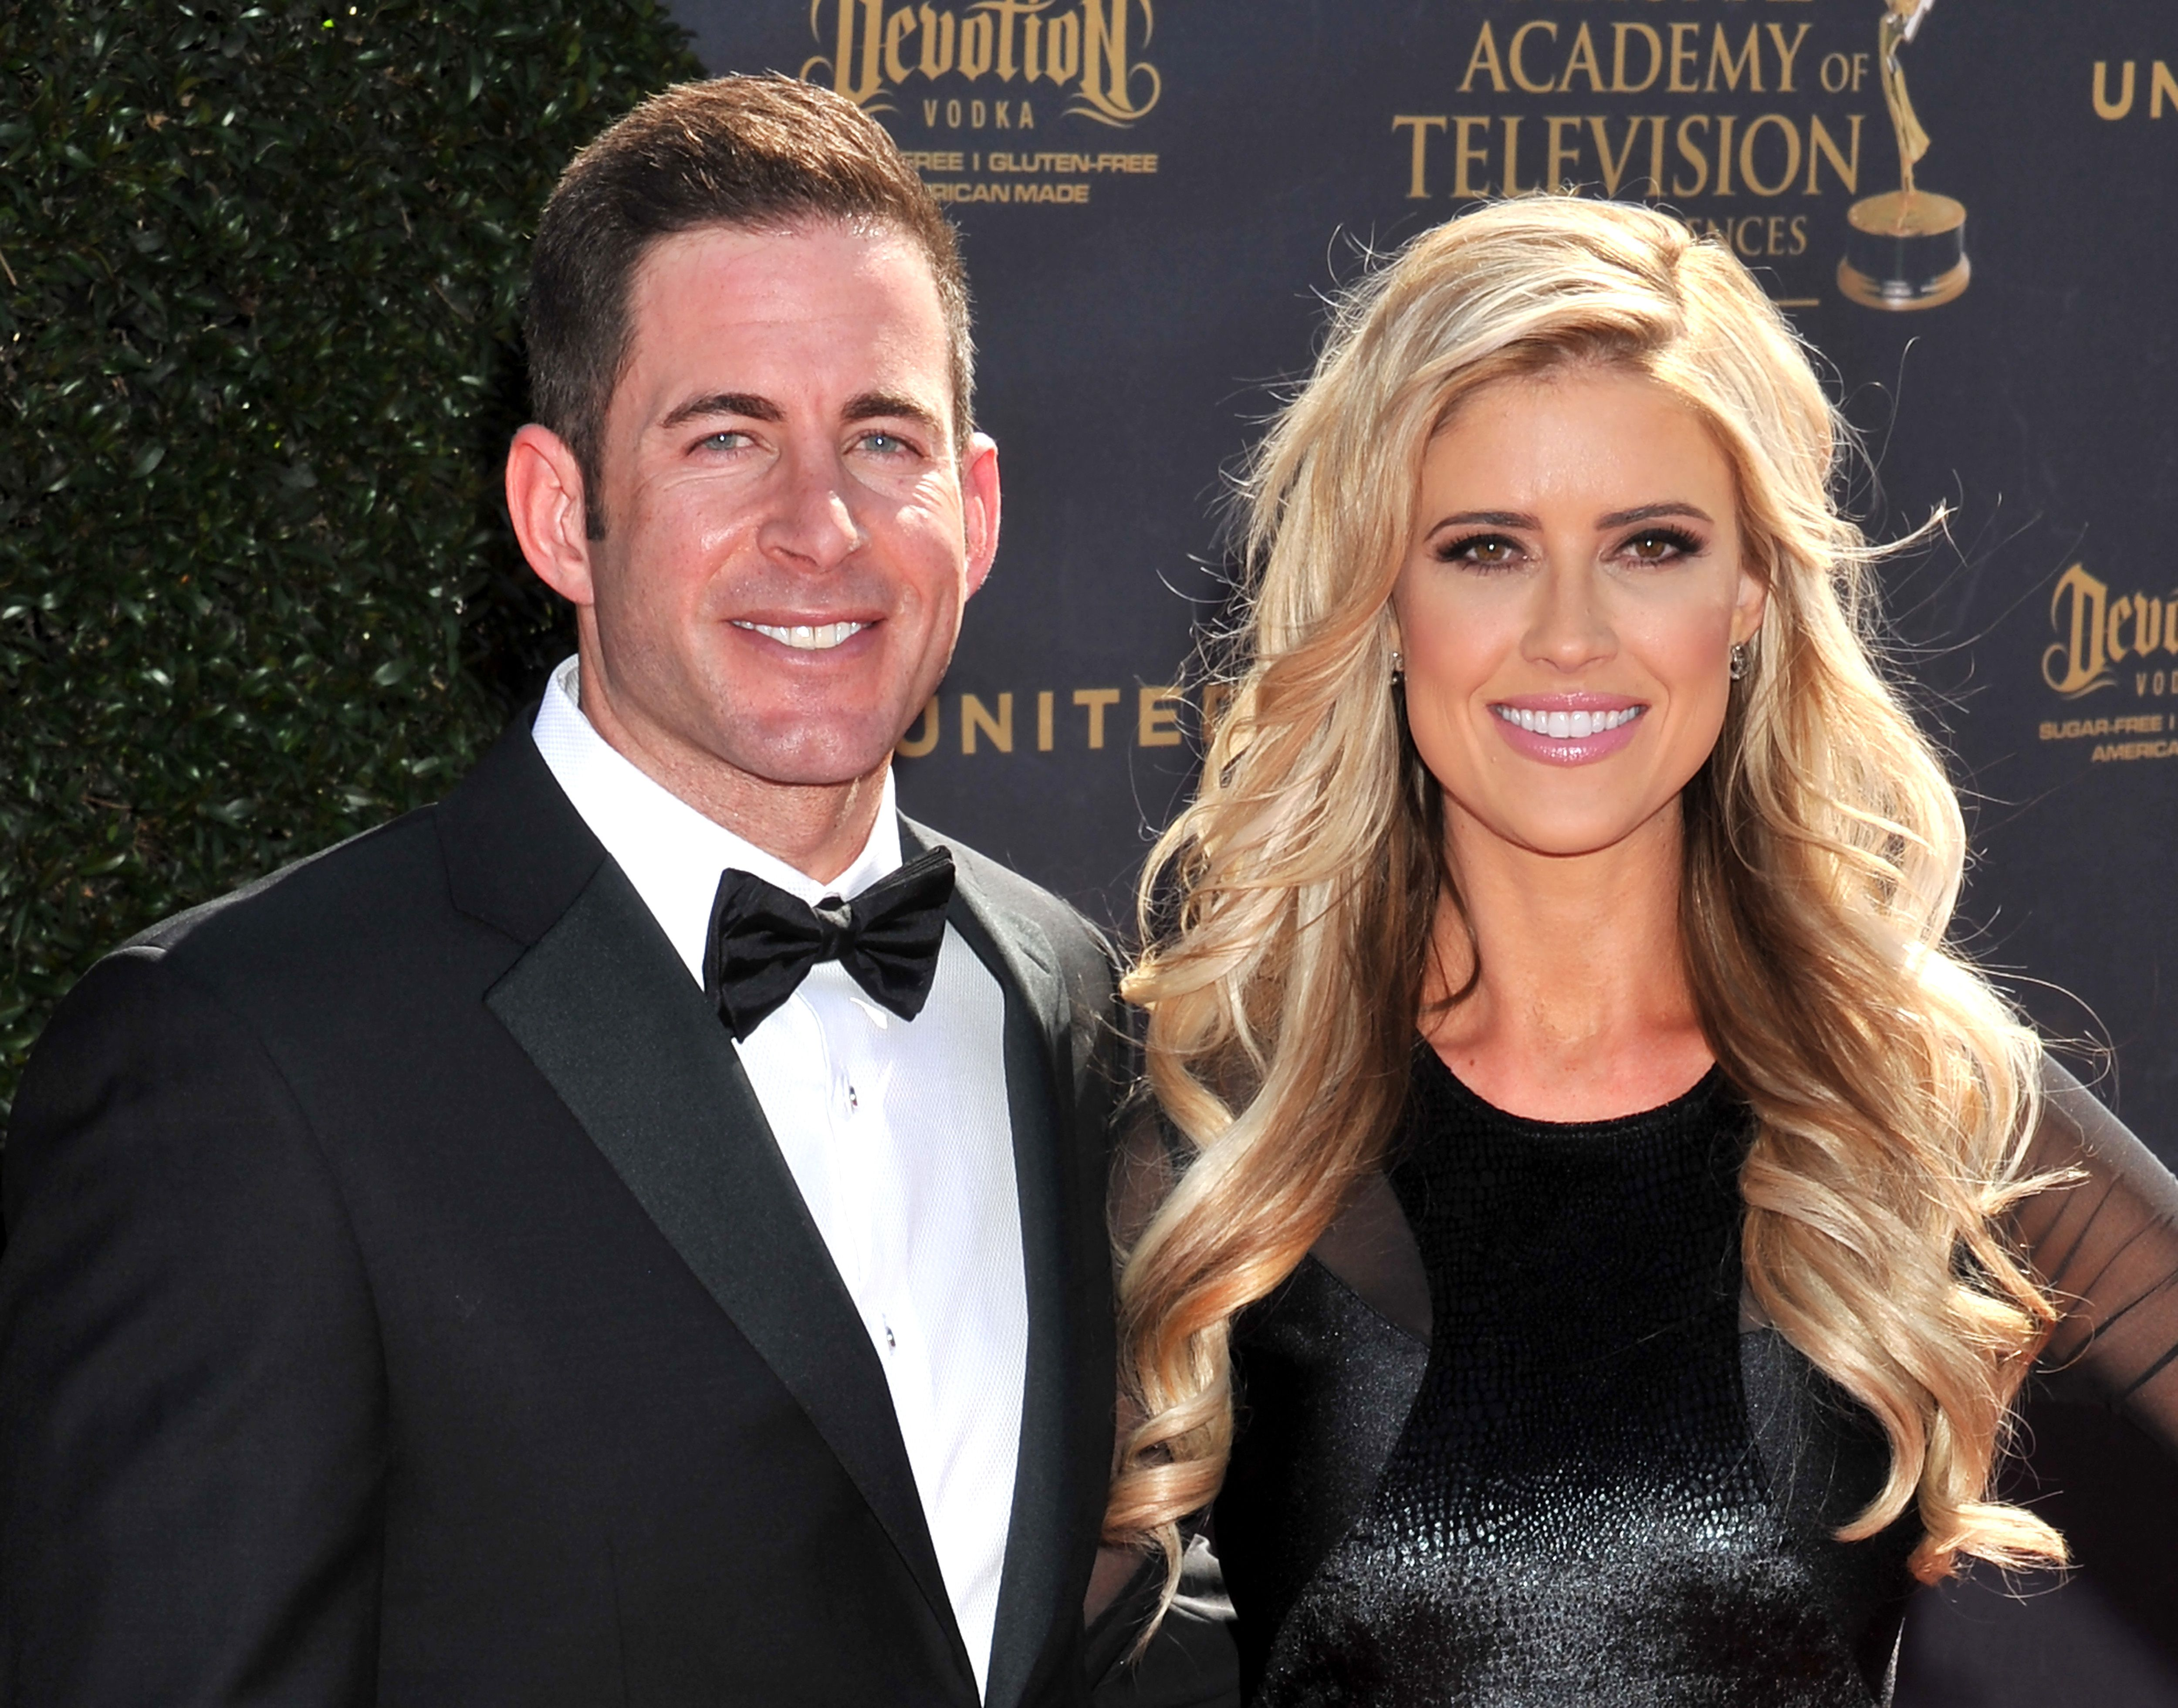 ce84326aea6aeb People Had a Lot to Say About Christina and Tarek El Moussa s Return to   Flip or Flop